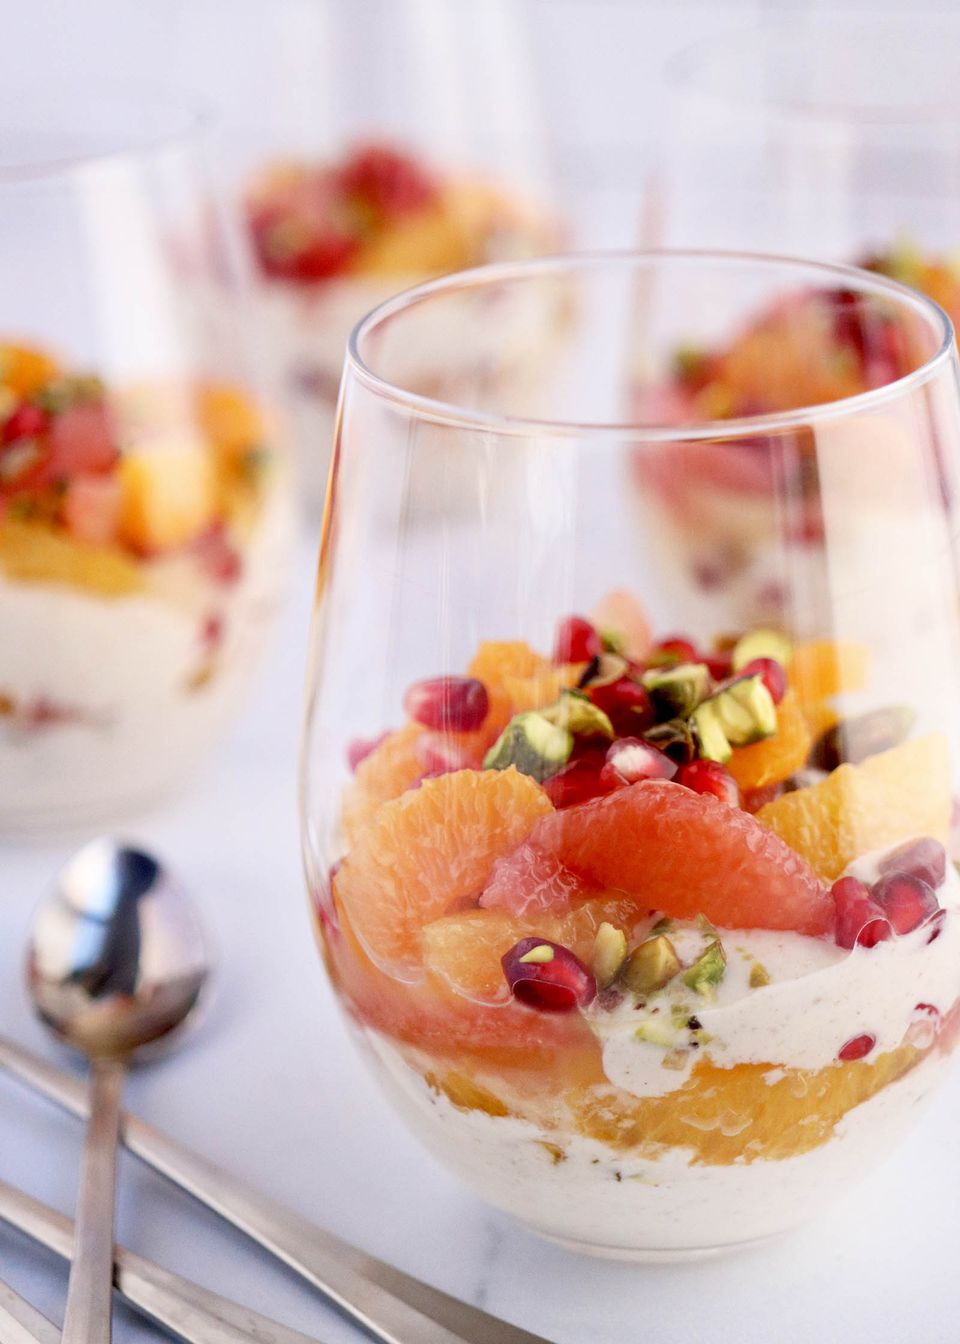 Glass of citrus fruits and yogurt topped with seeds and nuts on a white surface.